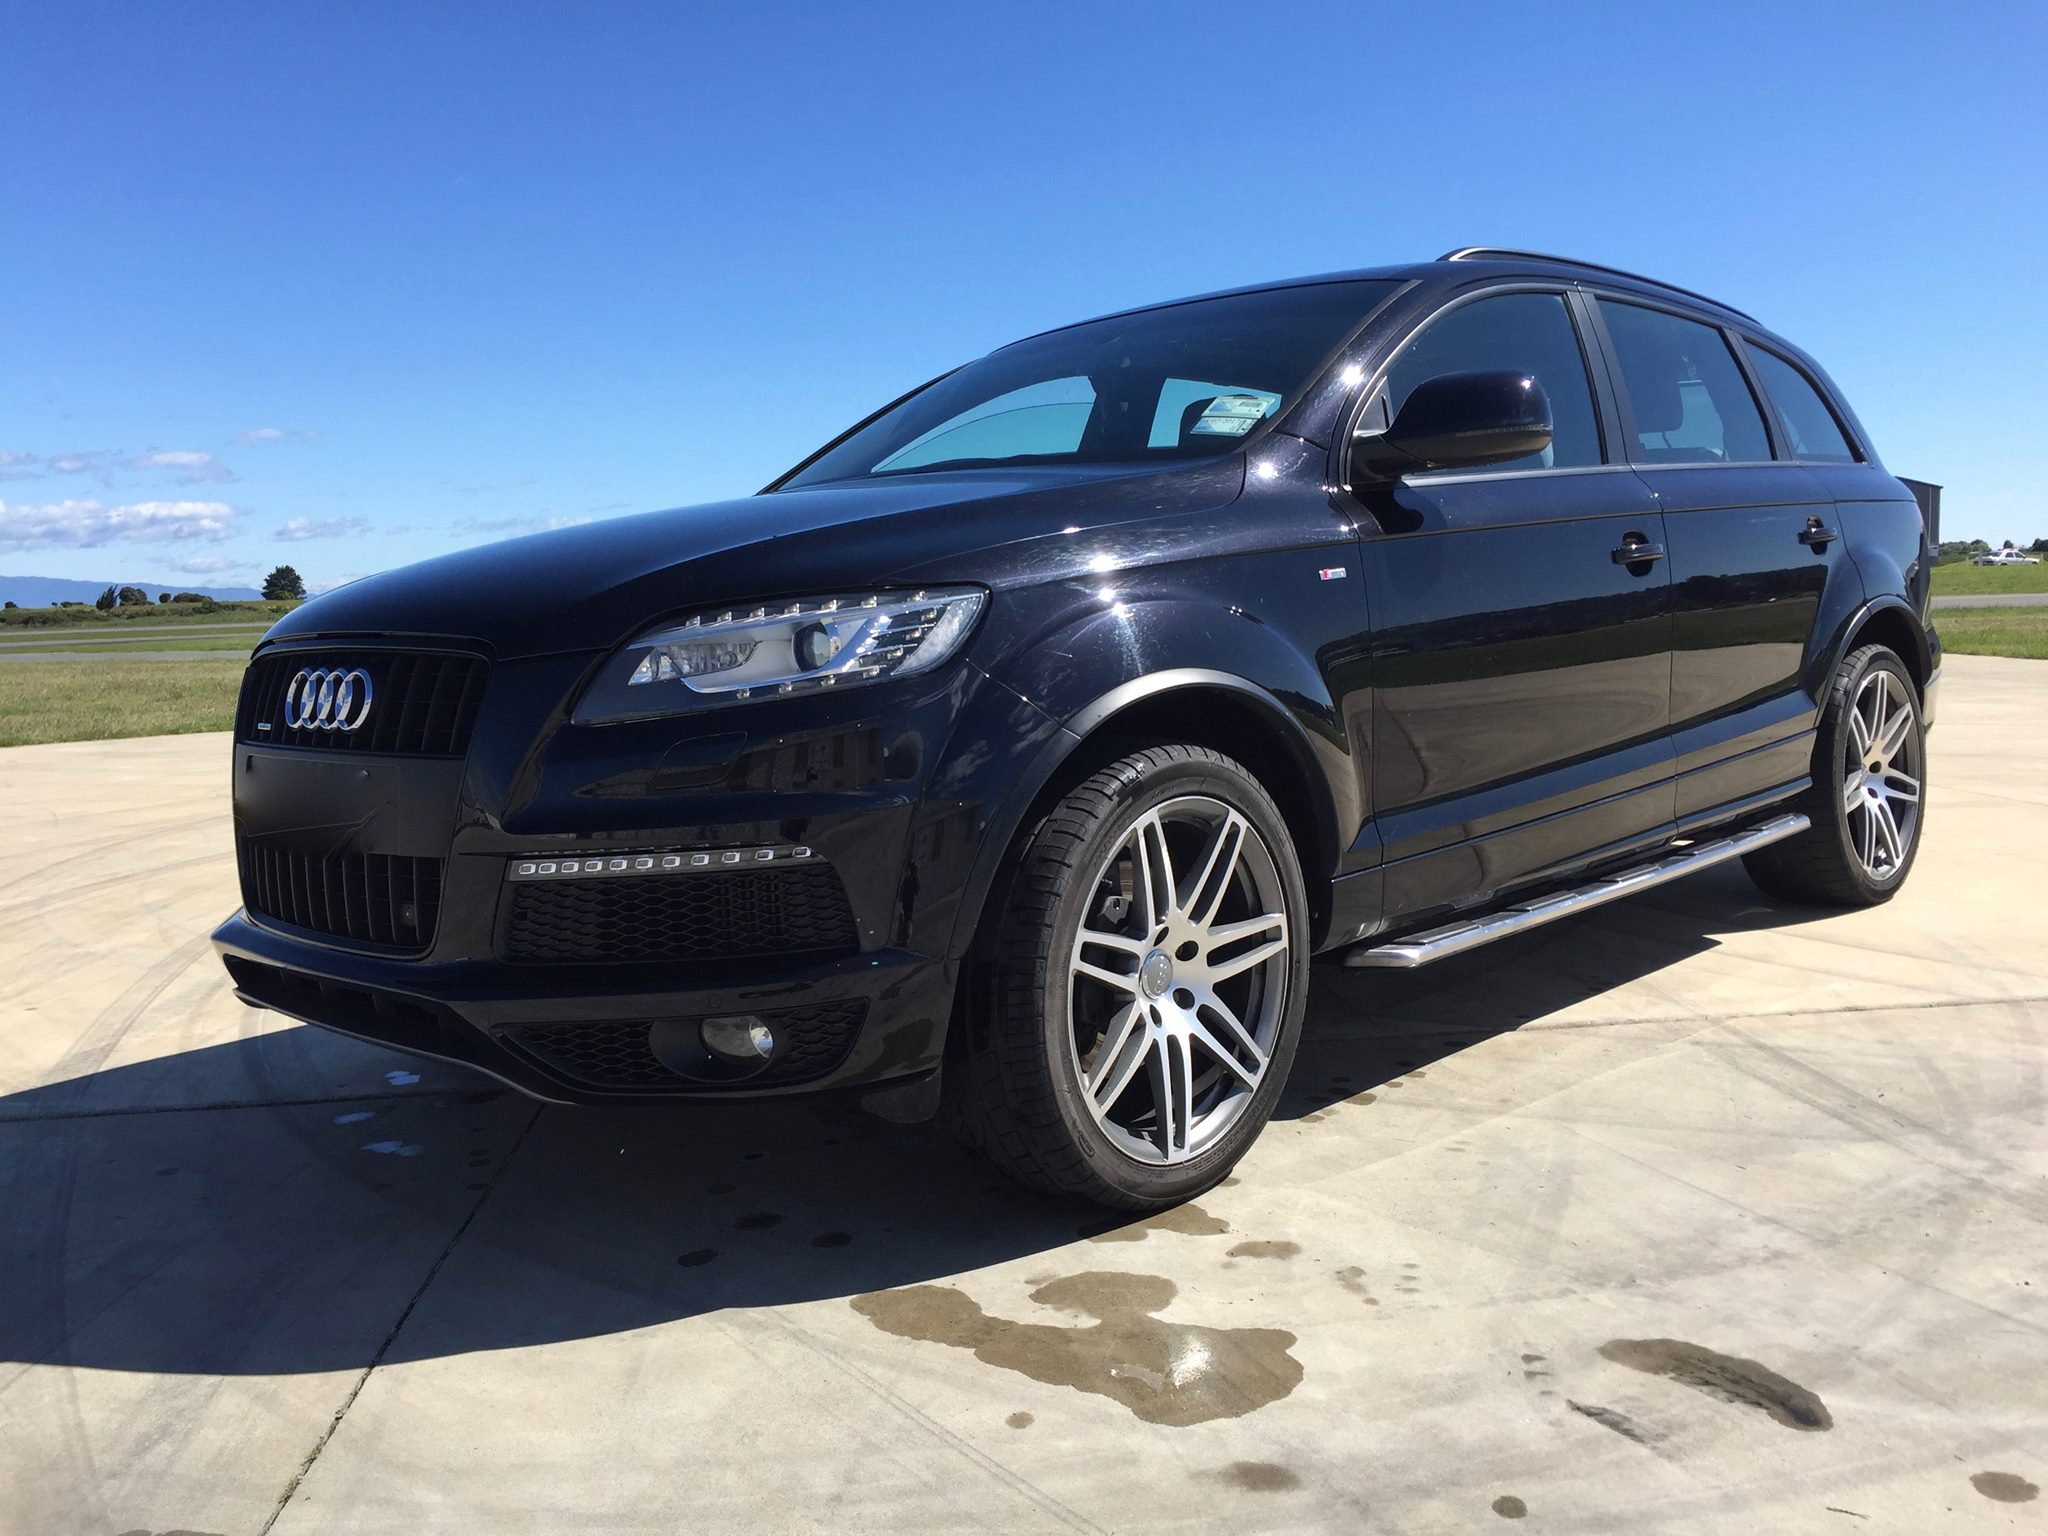 tdi owner in plate uk quattro used classifieds new line cars for tyres pistonheads diesel x private sale audi model s facelift